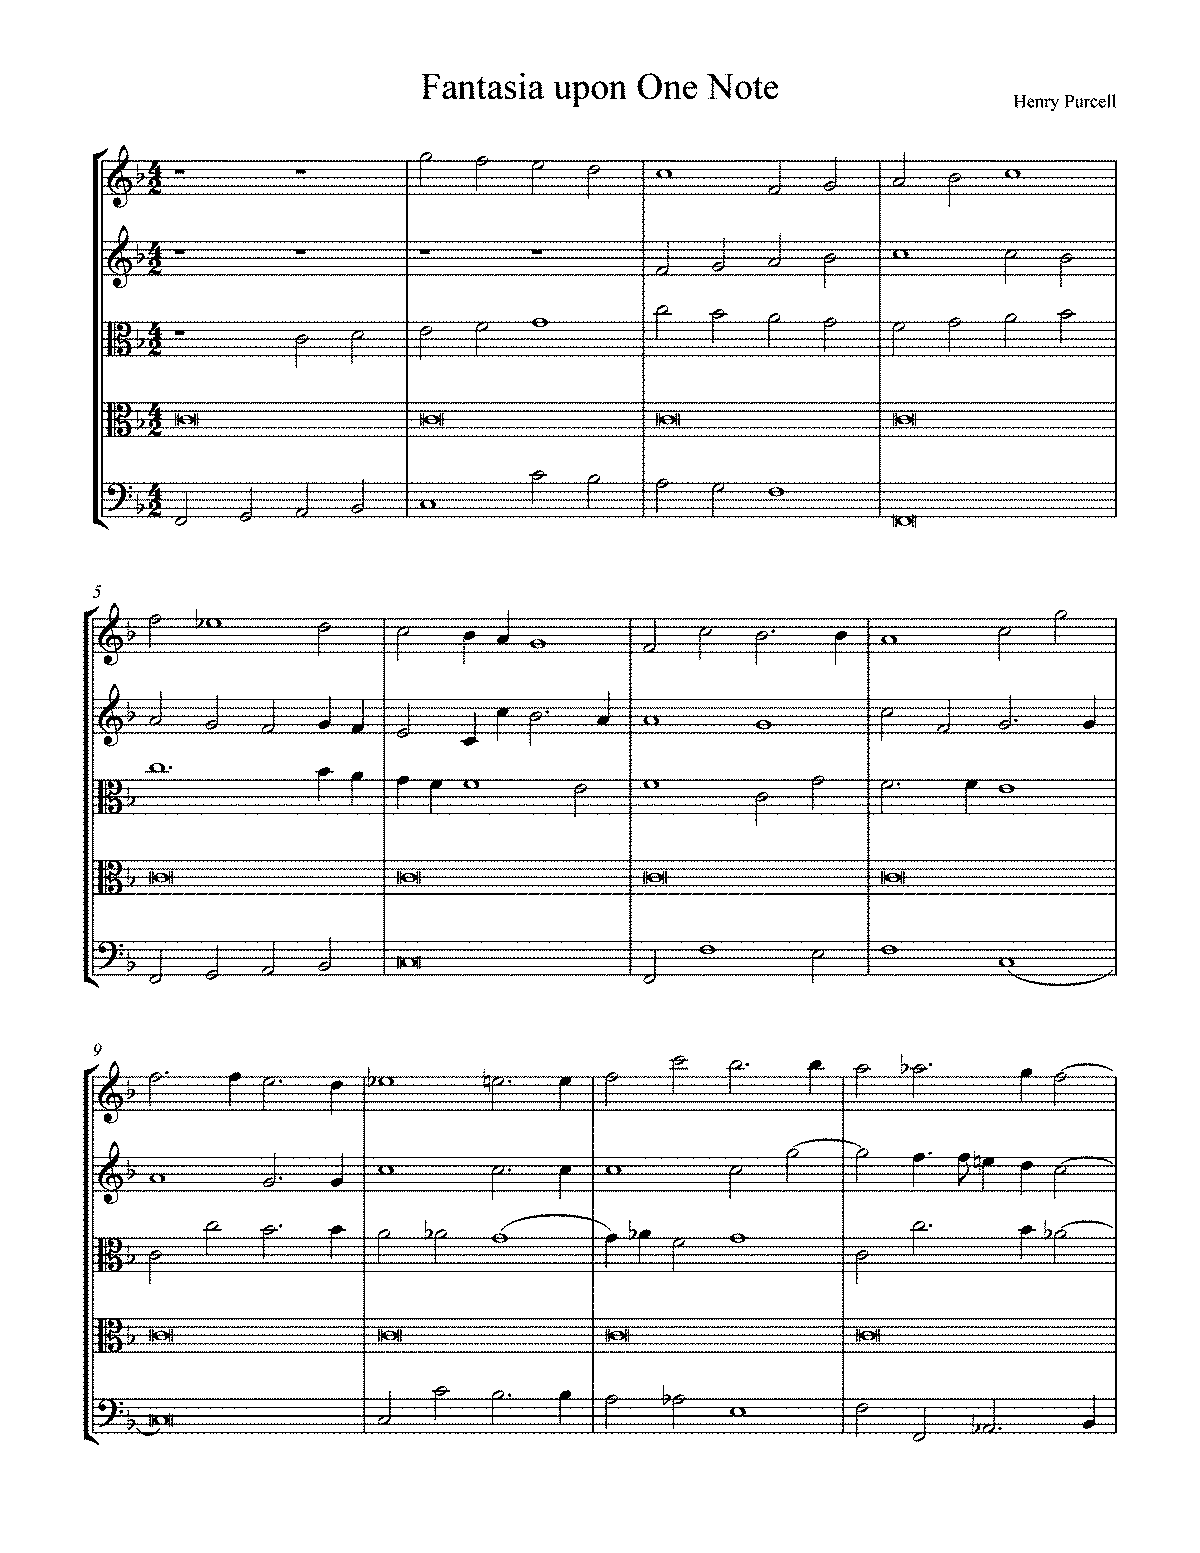 Purcell fantasia upon one note.pdf